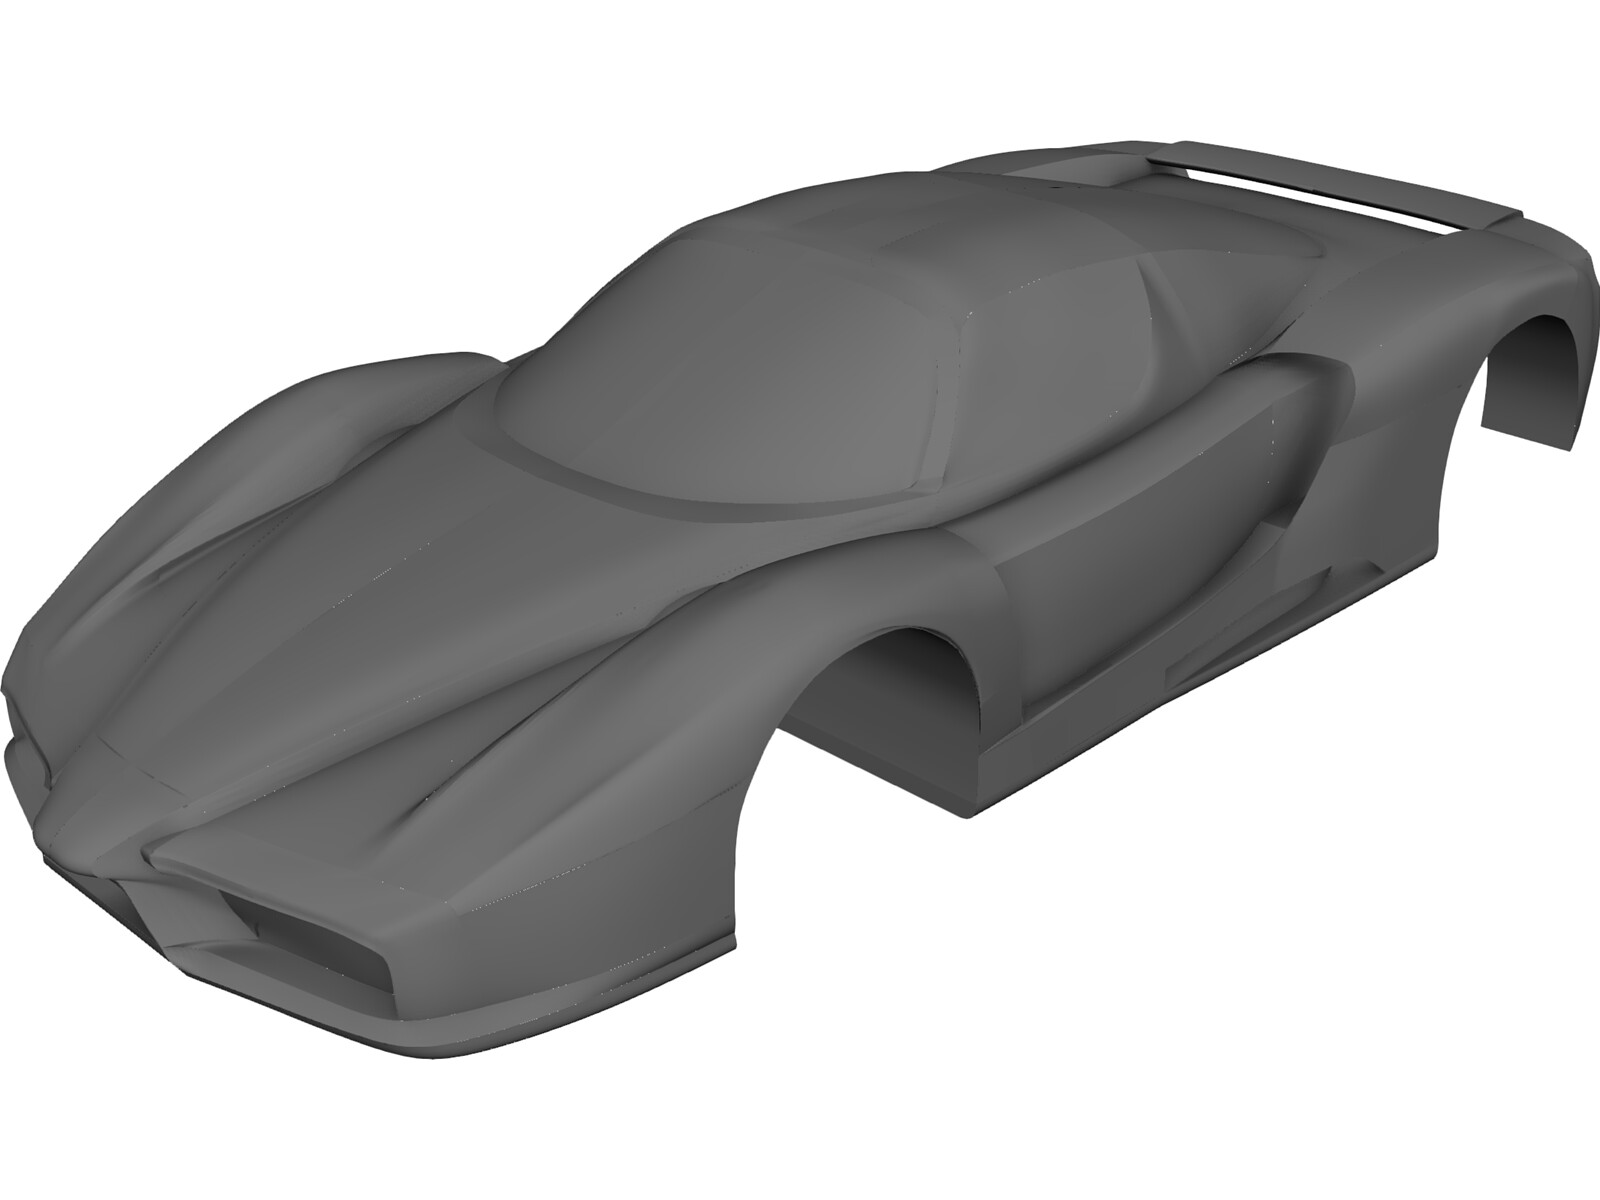 Ferrarri Enzo Body 3D Model